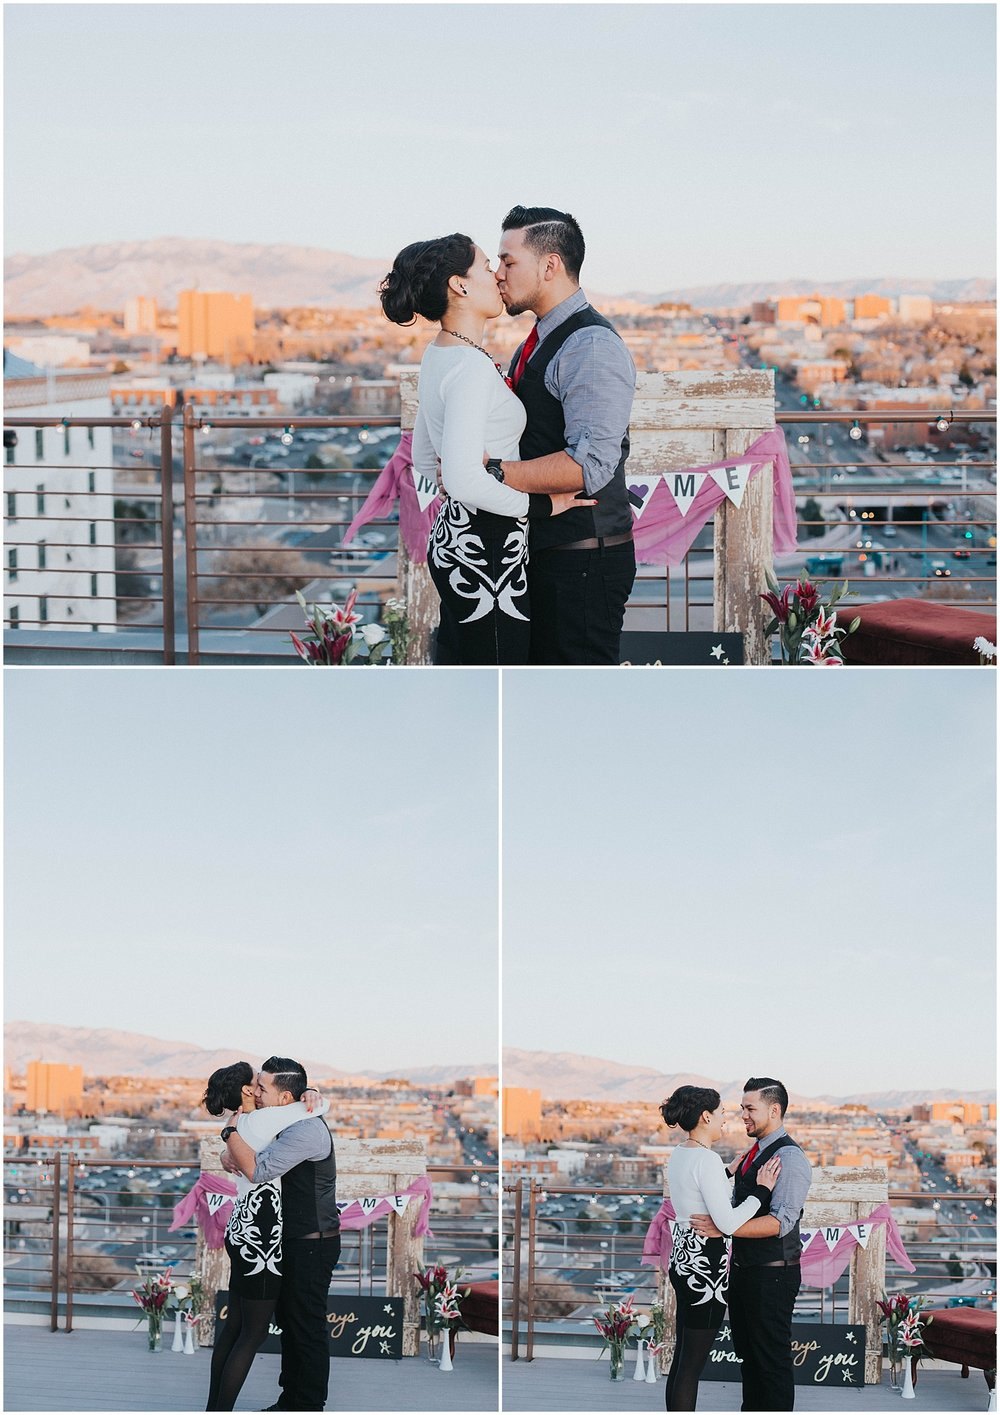 Banque-Lofts-Surprise-Proposal_Albuquerque-Banque-Lofts-Albuquerque-Wedding-Photographer_0010.jpg